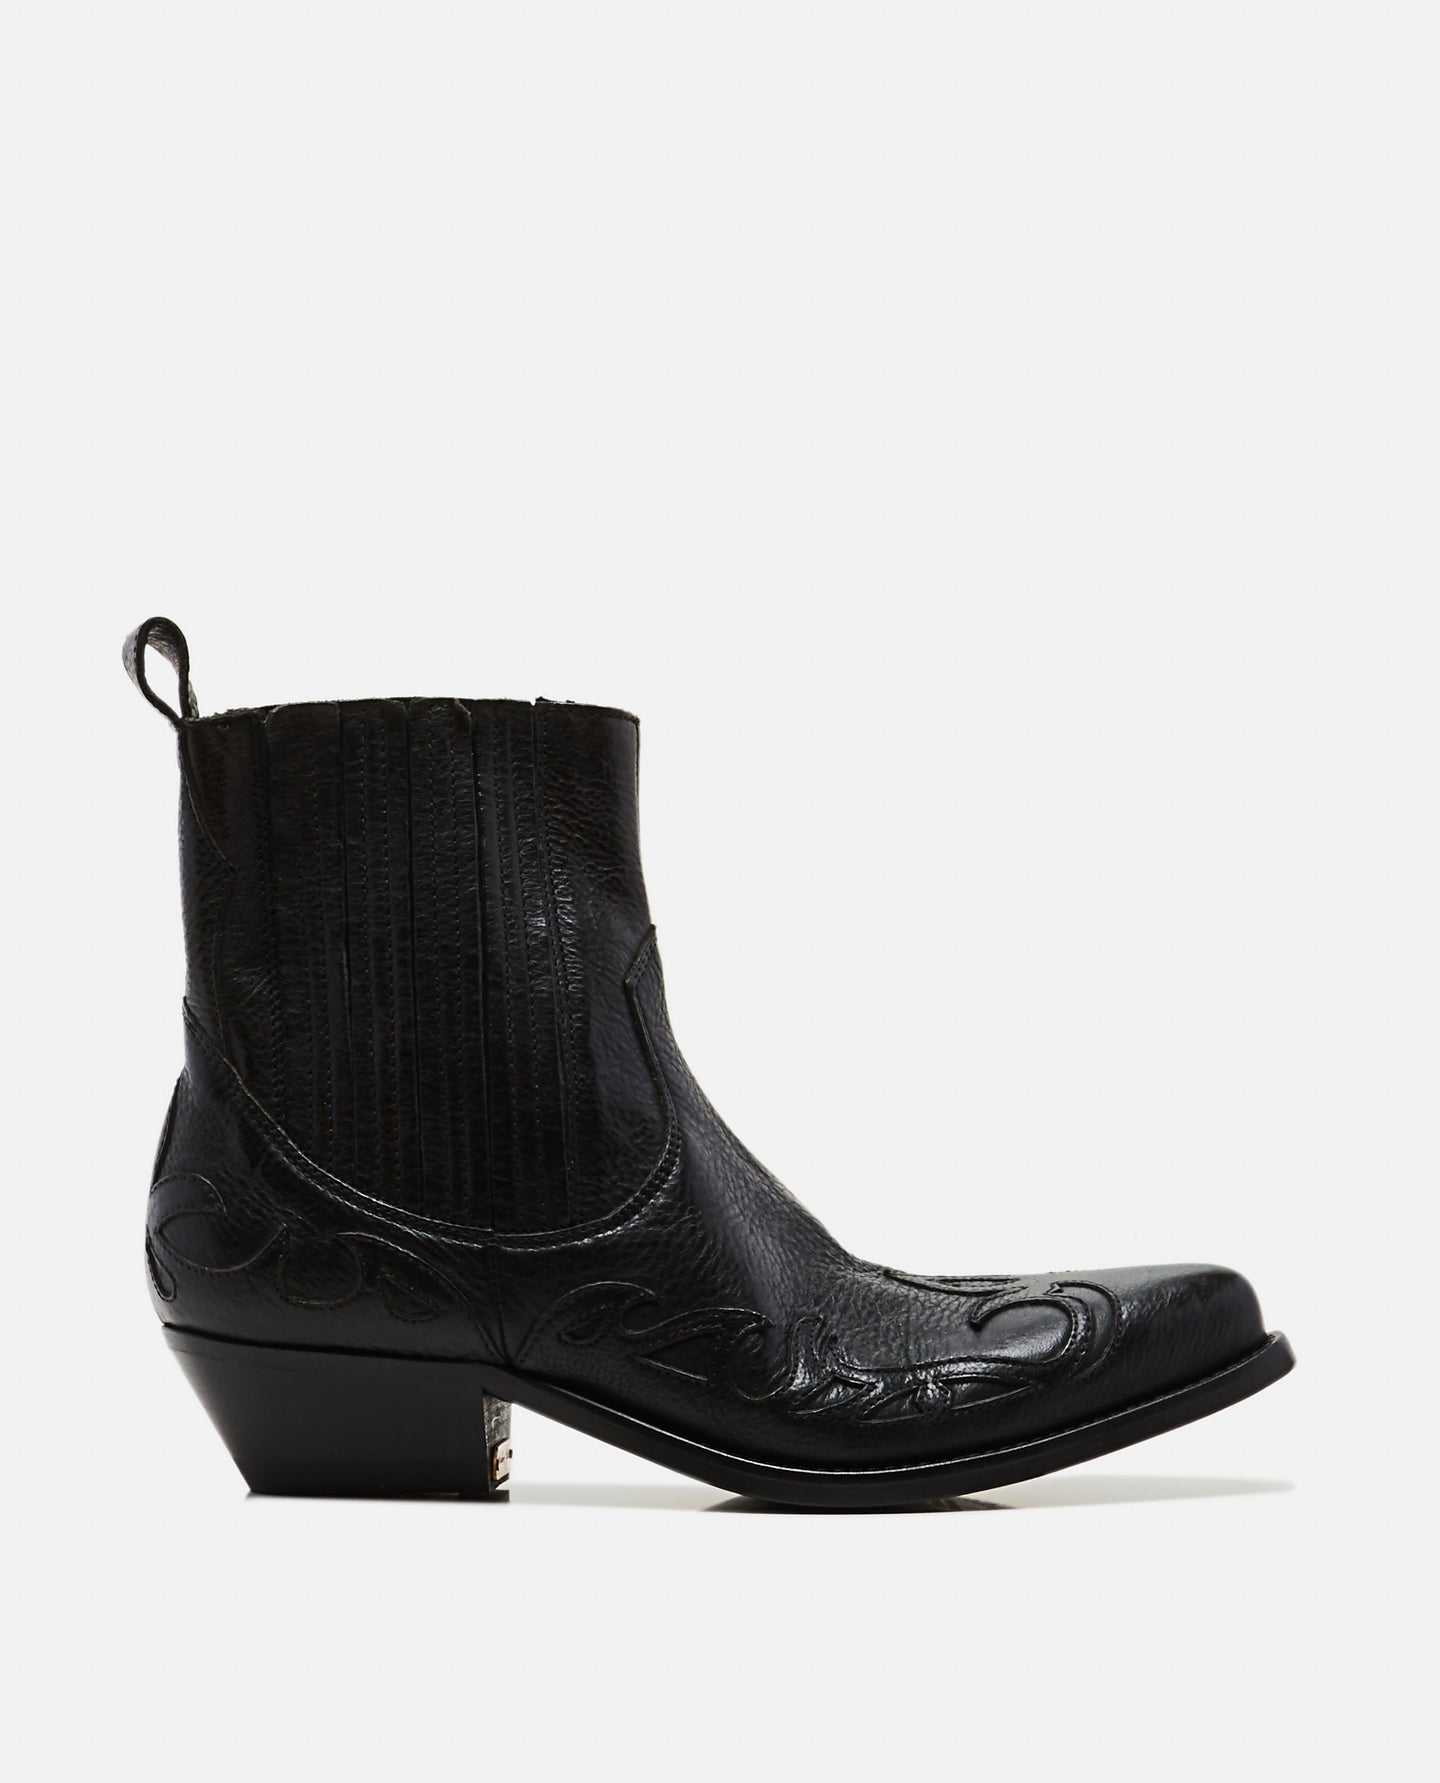 Santiago Leather and Suede Black Boots